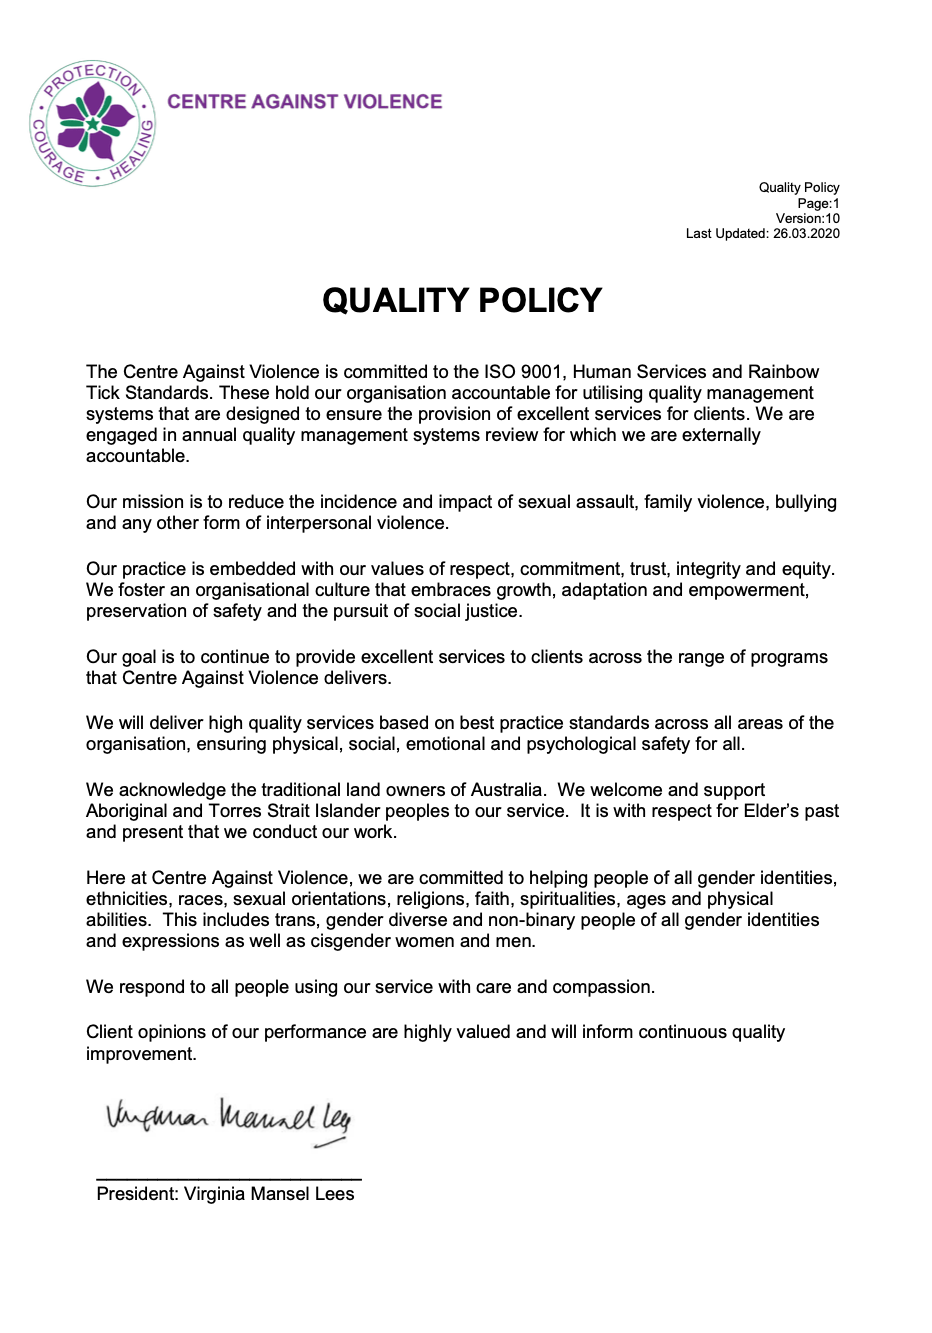 Centre Against Violence Quality Policy